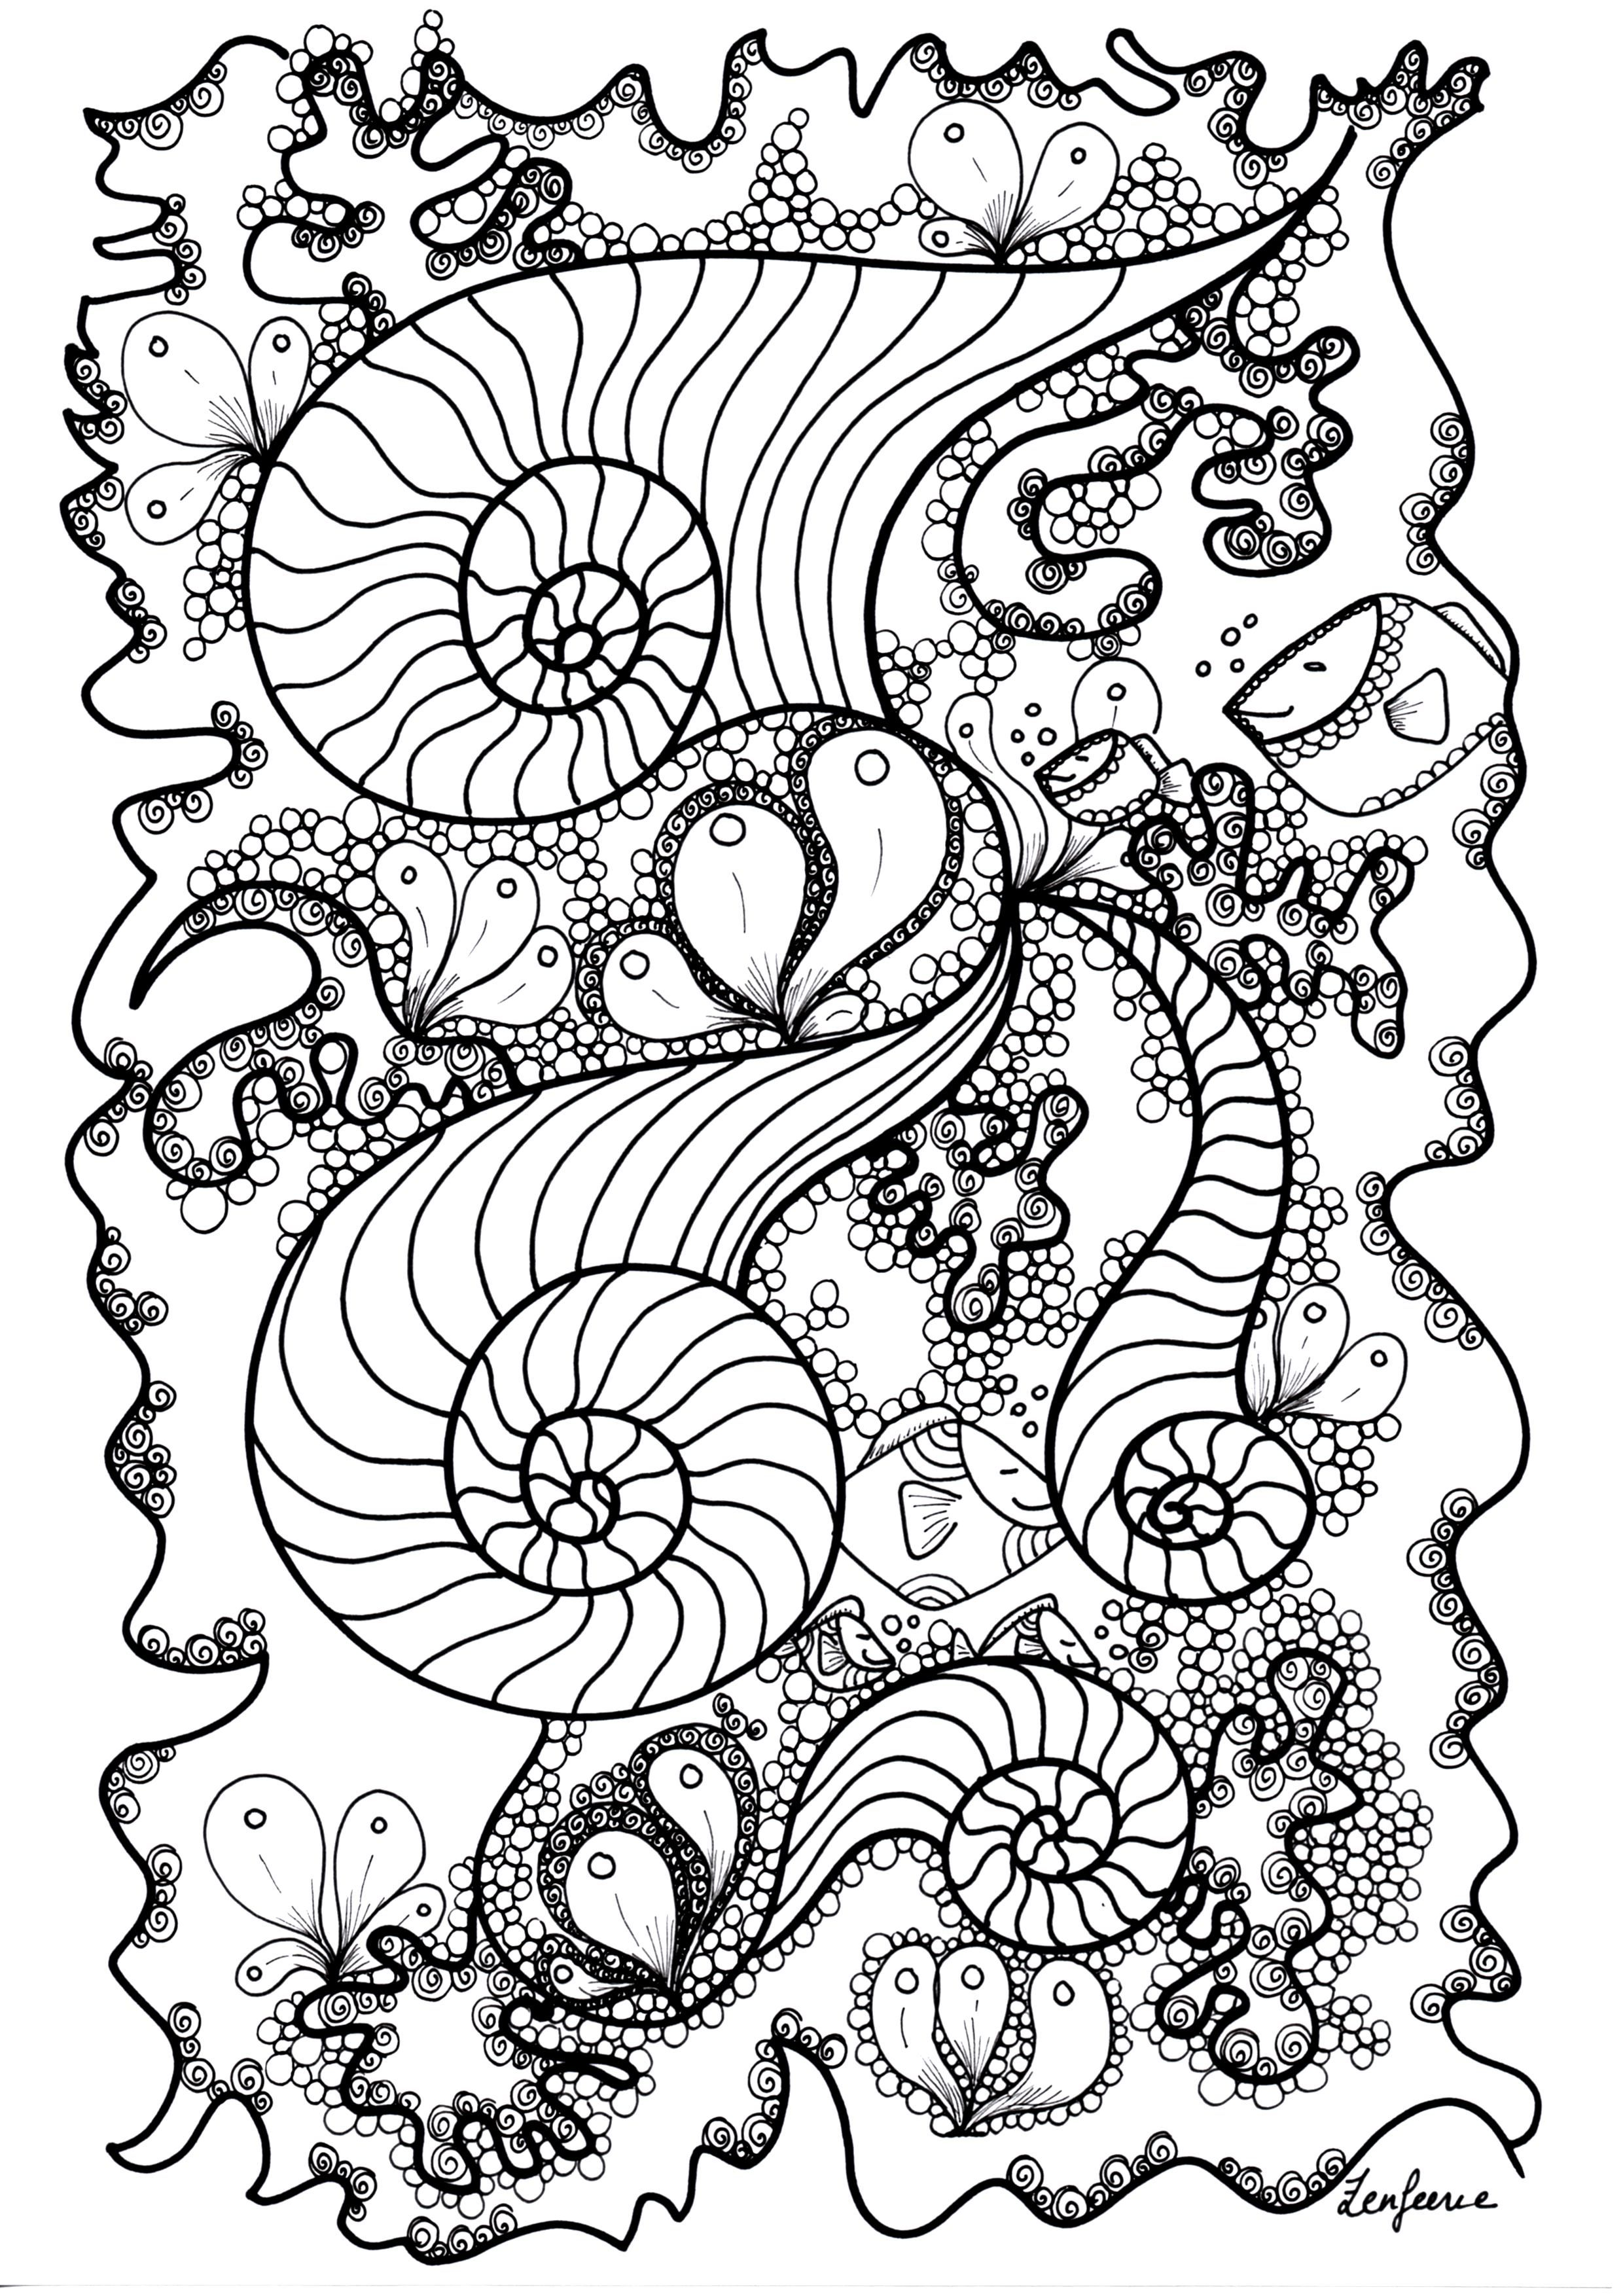 Pin On Adult Coloring Pages [ 3508 x 2480 Pixel ]